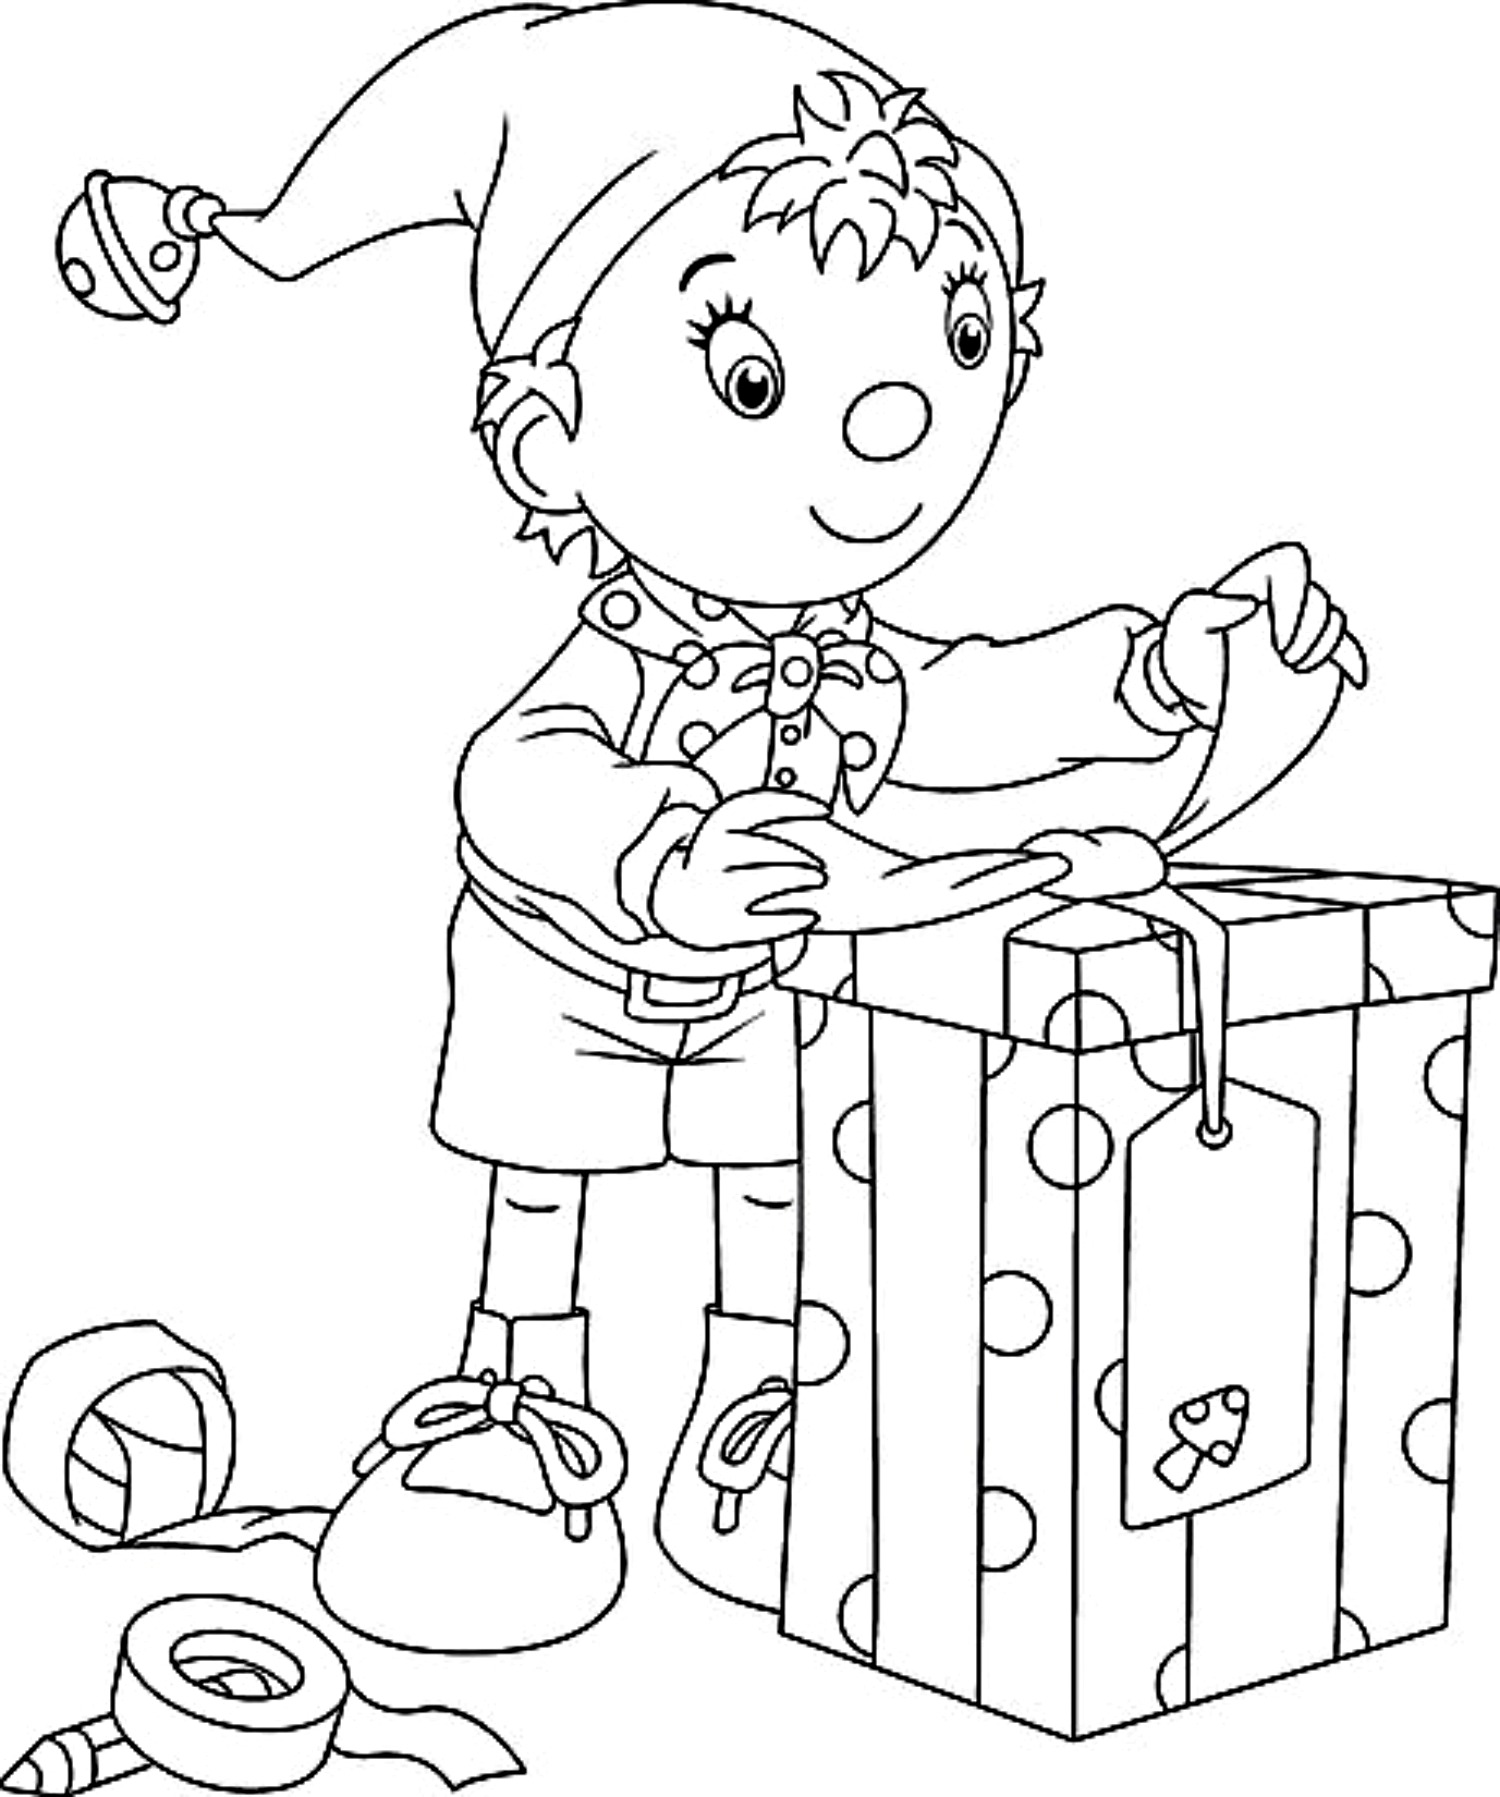 Buddy The Elf Coloring Pages Coloring Page